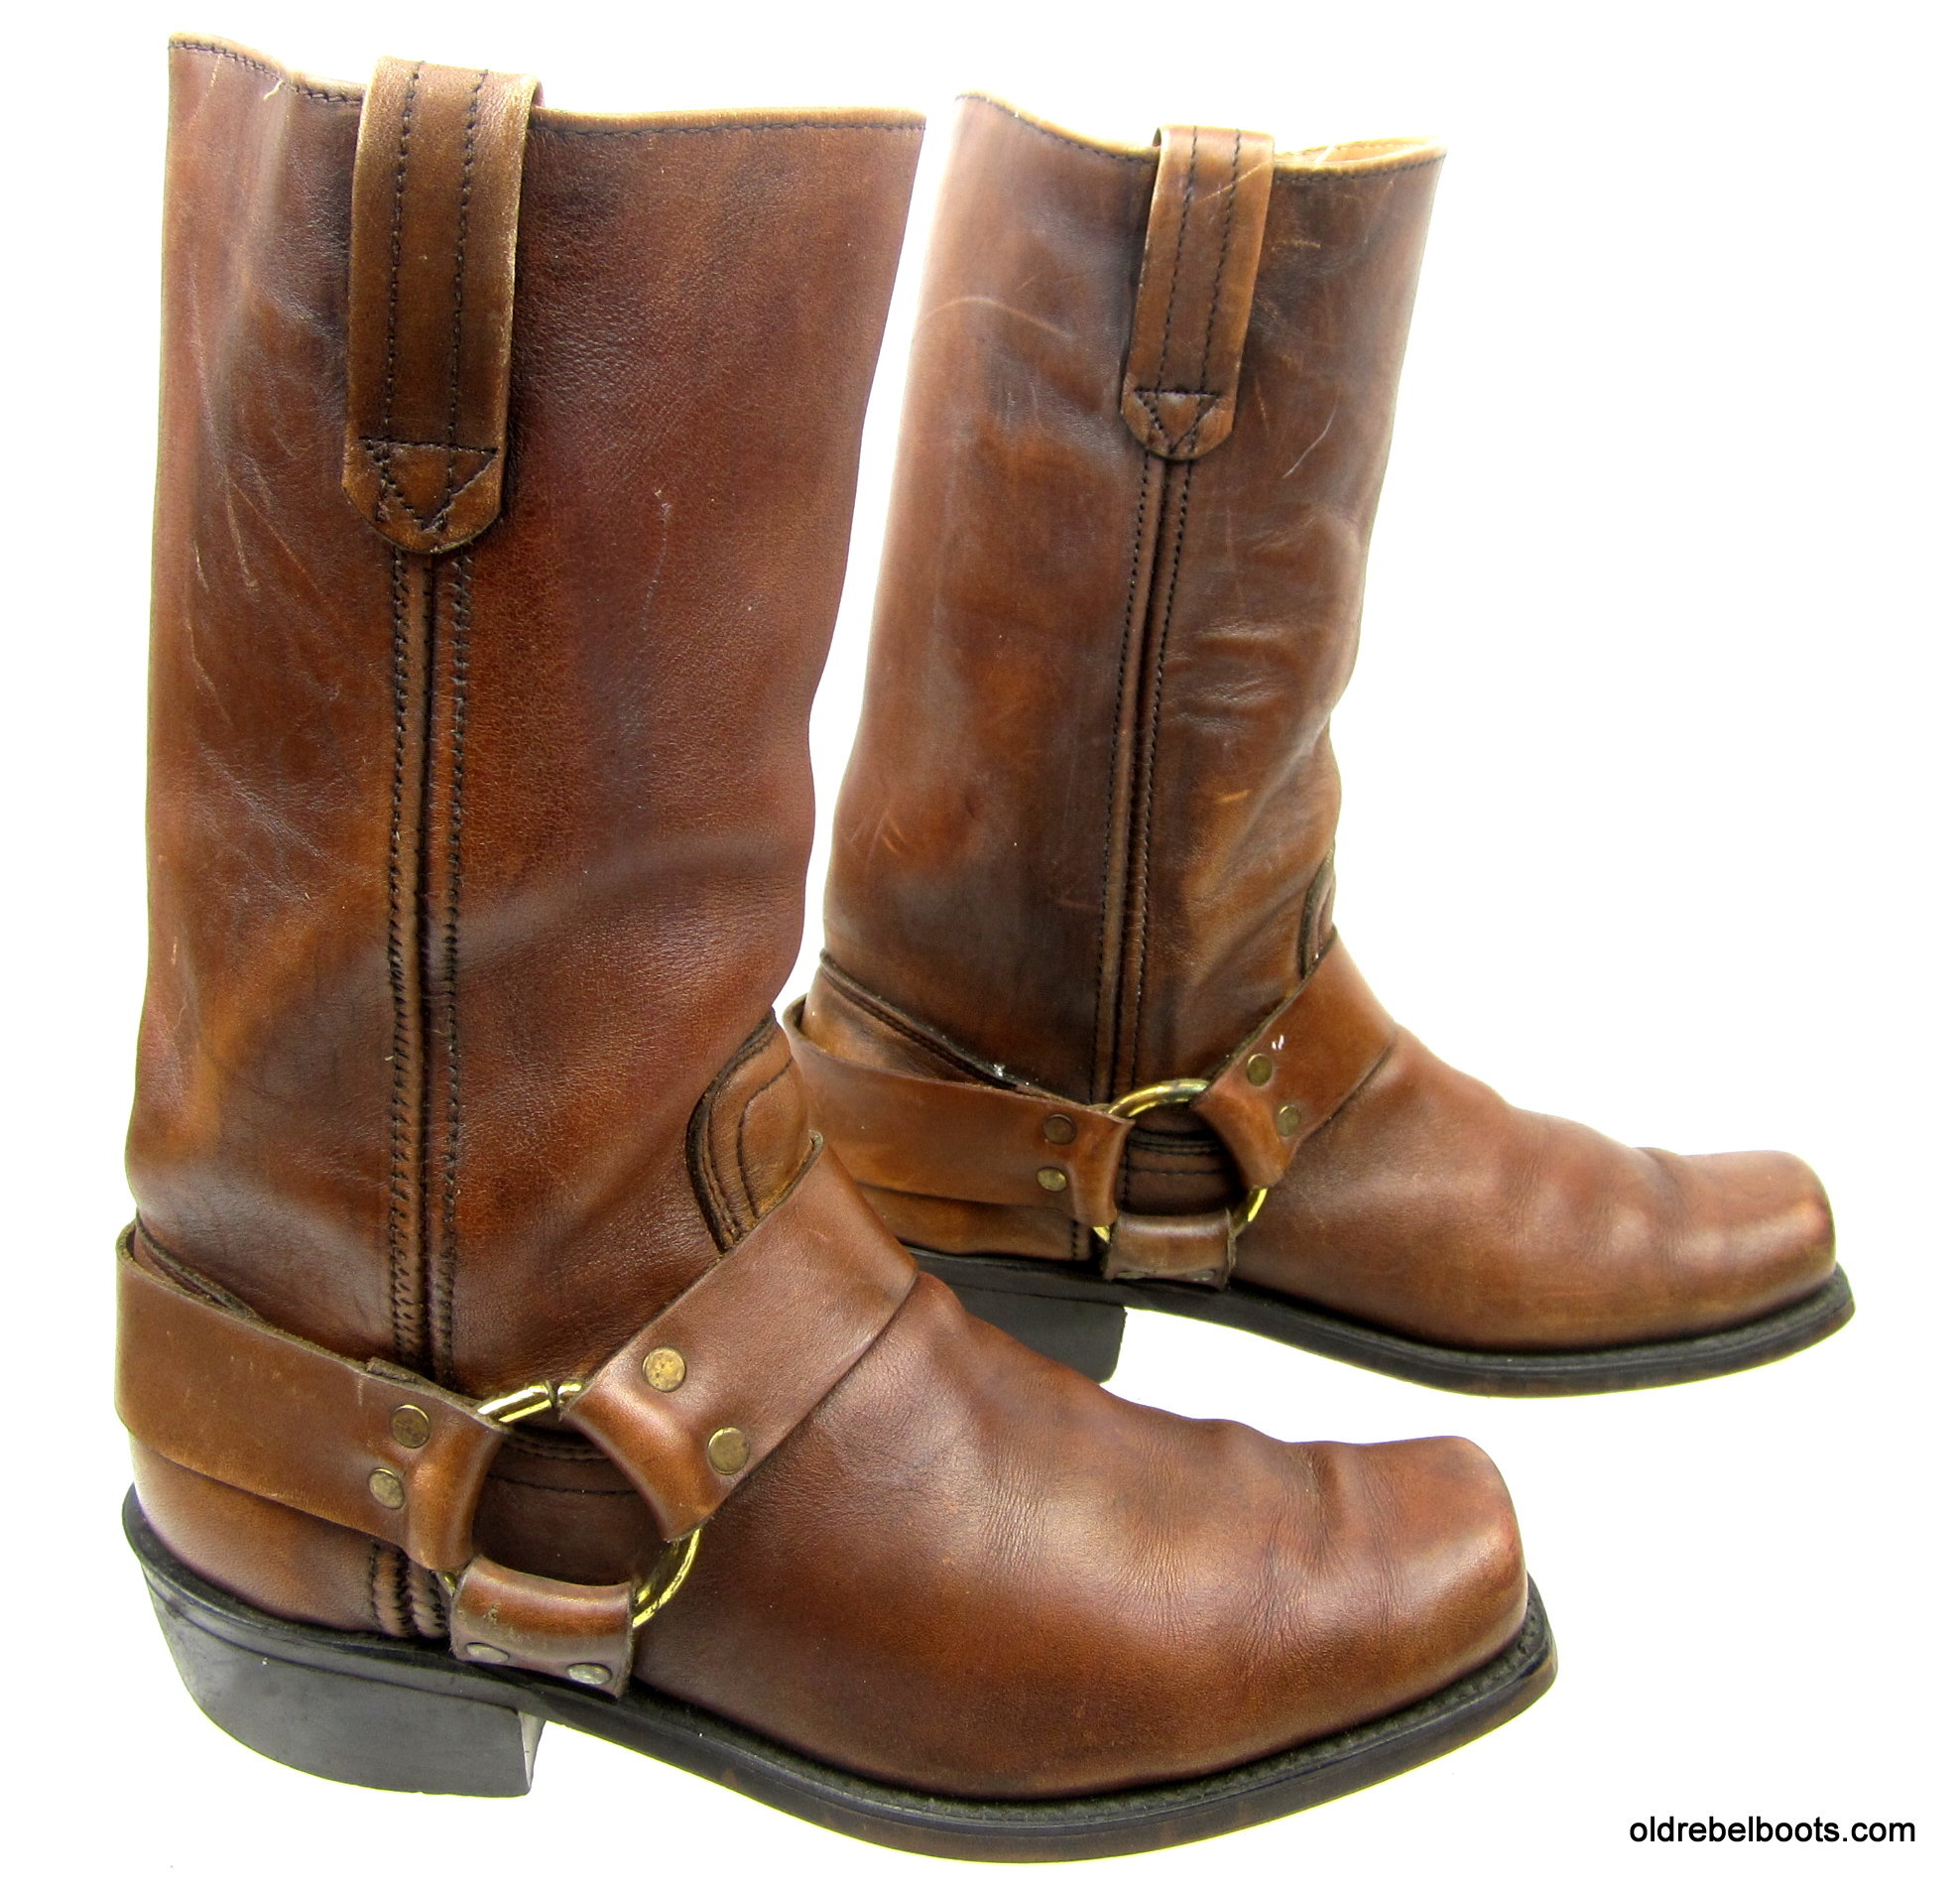 ae28768ca190b Vintage 60s 70s Dexter High Rider Brown Leather Square Toe Harness  Motorcycle Boots Men Size 8.5 D